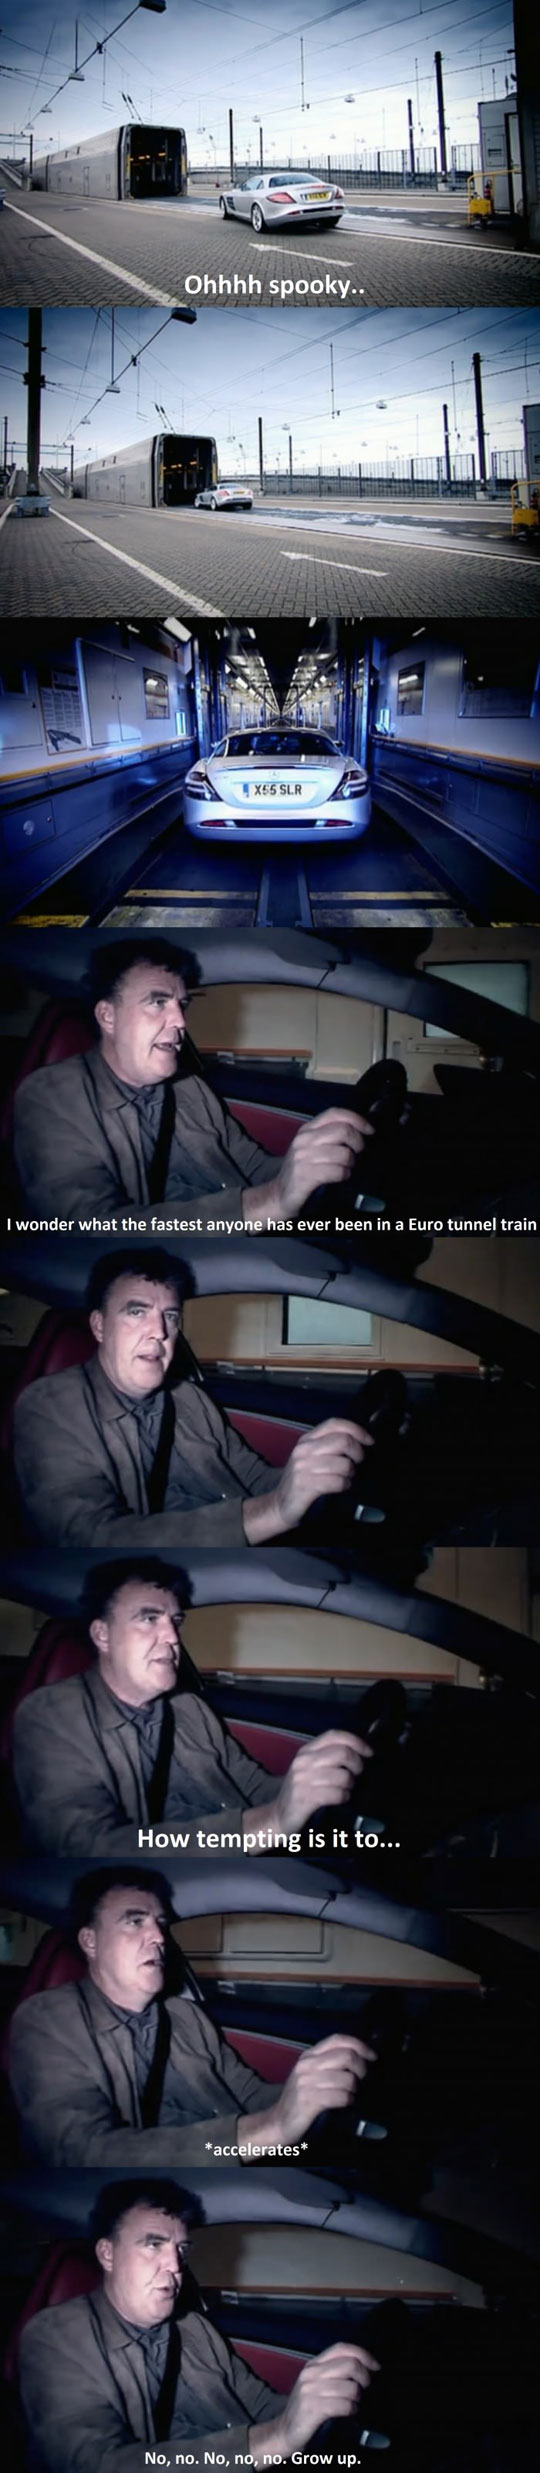 funny-car-Europe-train-accelerate-Jeremy-Clarkson